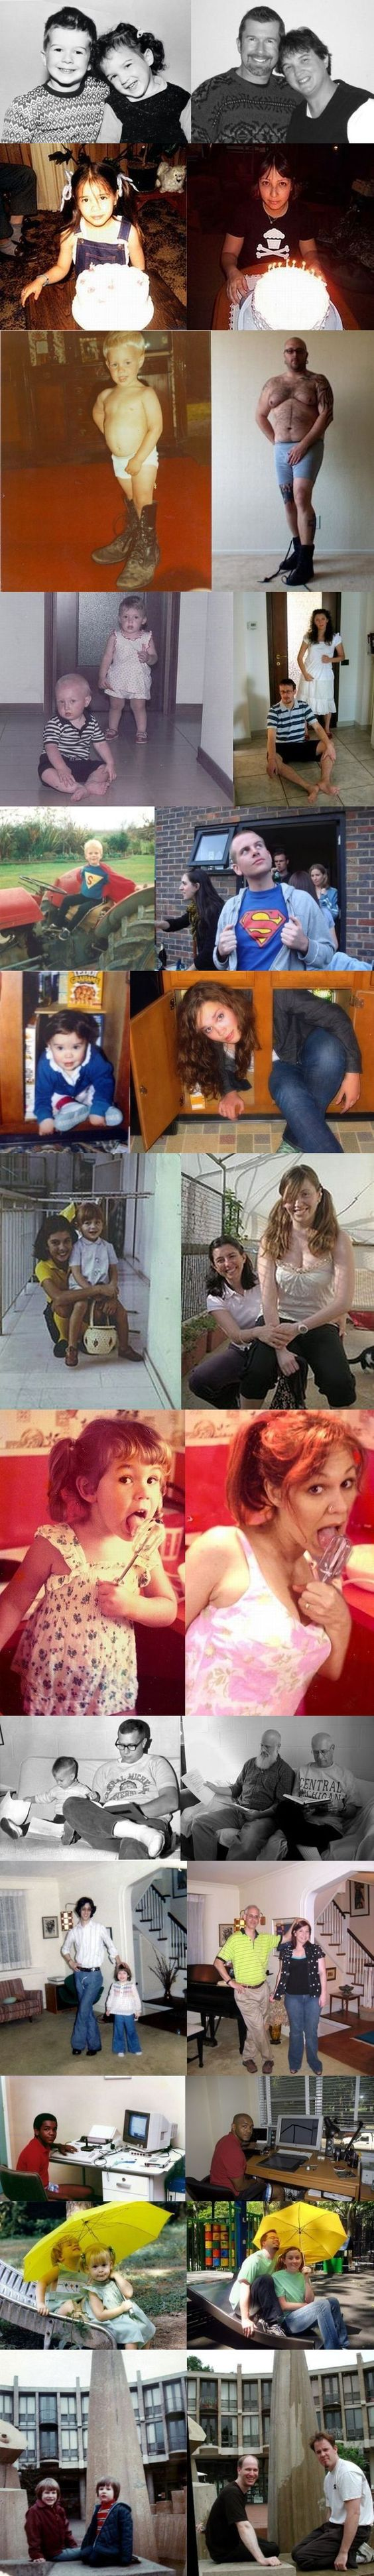 Recreating childhood photos - hilarious gift for parents. This would be funny!